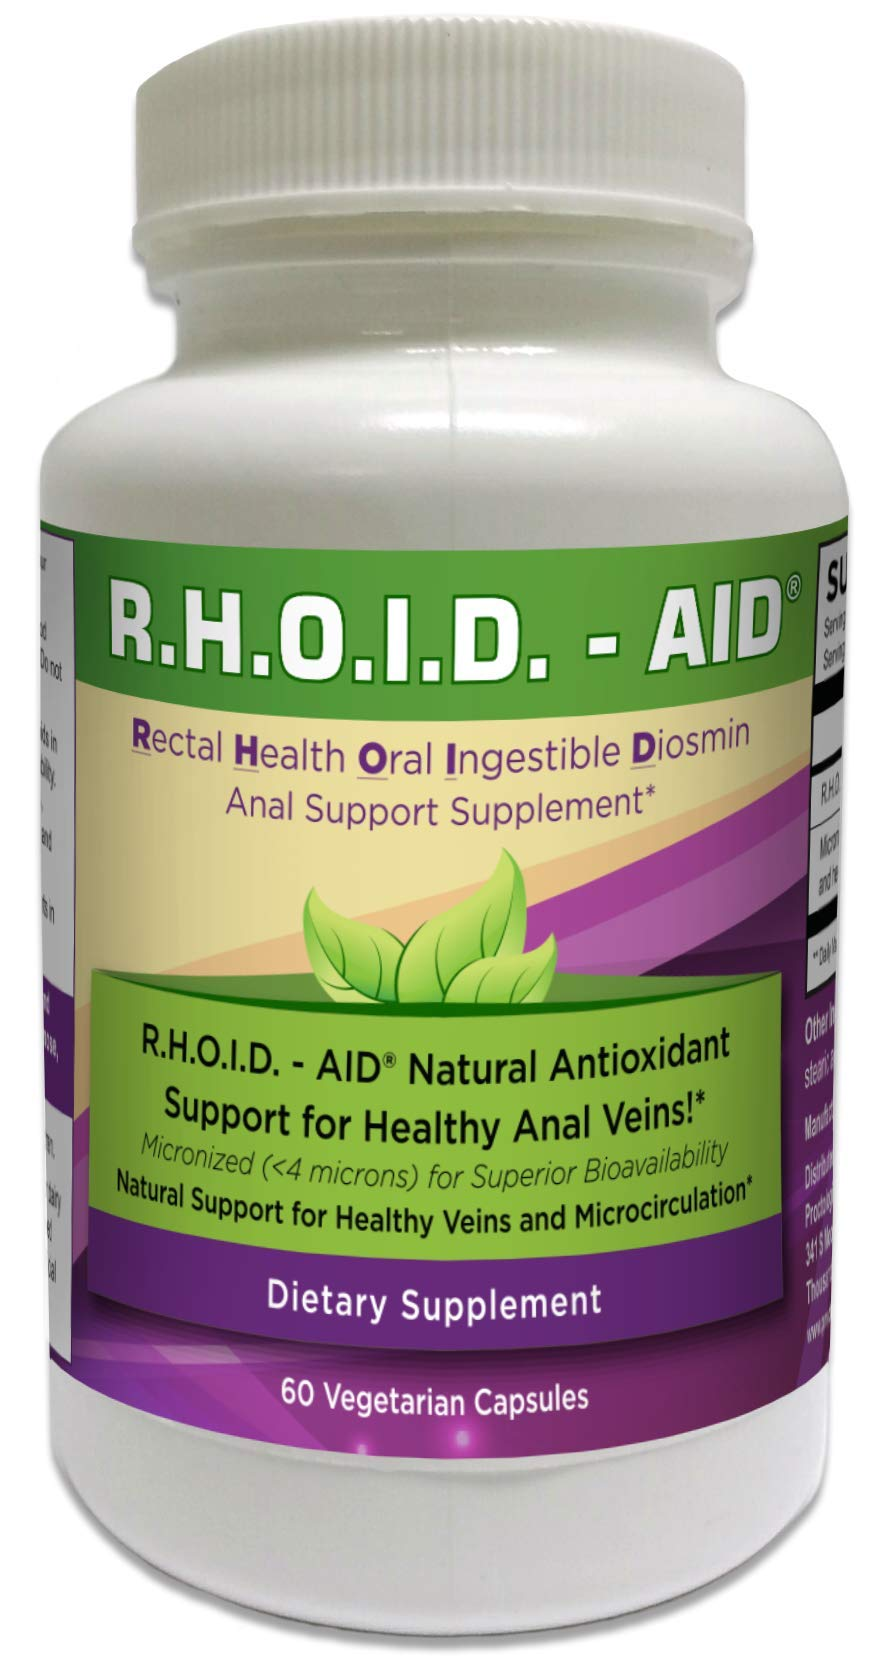 R.H.O.I.D. - AID | 100% Natural Hemorrhoid Treatment & Anal Support Supplement by ADI